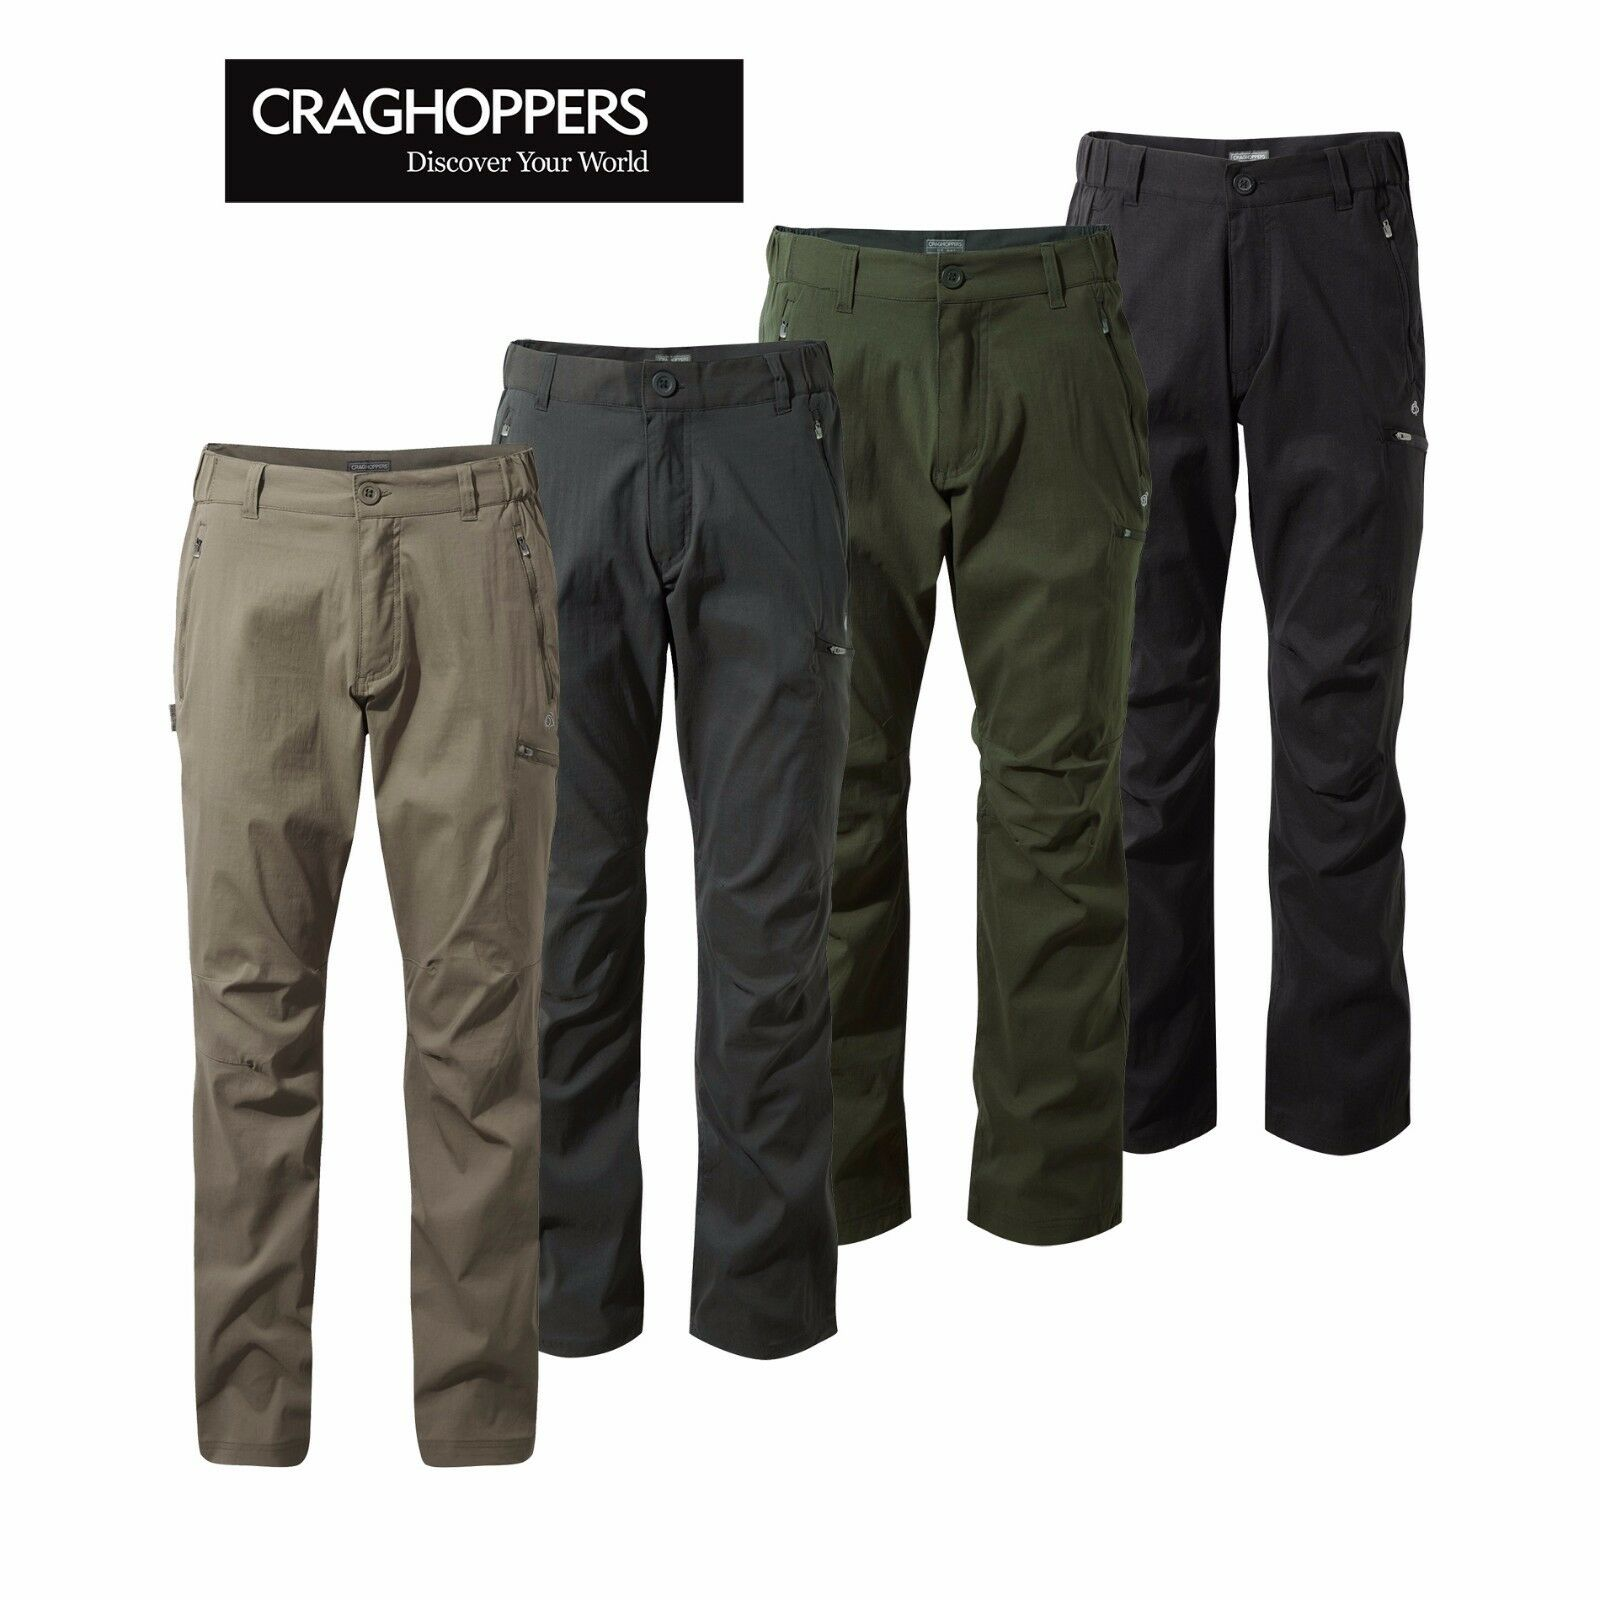 Craghopppers Mens Kiwi Pro  Active Full Stretch Casual Walking Trouser 30-42  cheap store